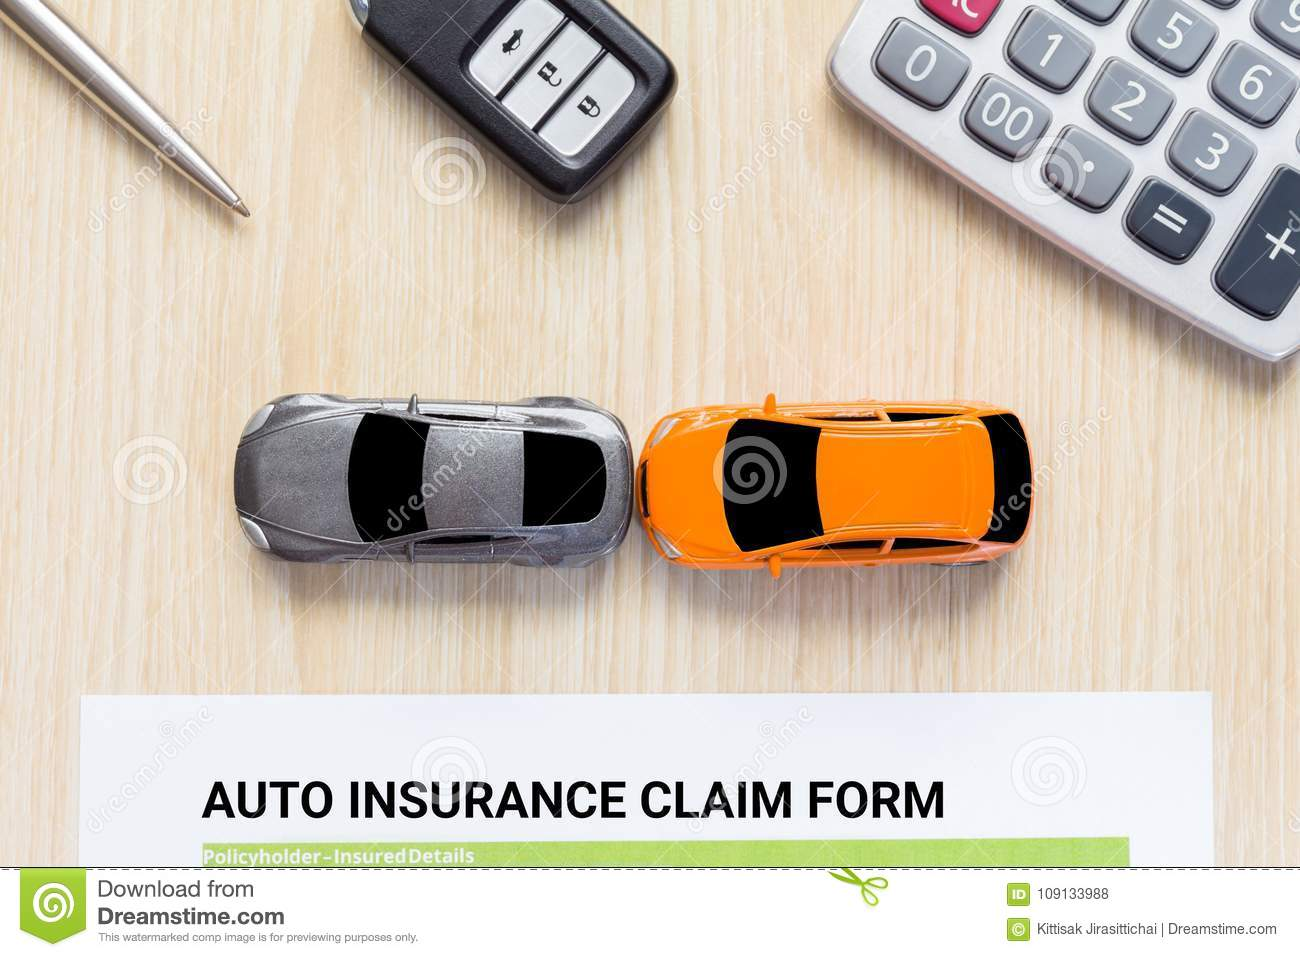 Top View Of Auto Insurance Claim Form With Car Toy Crash On Wood Stock Photo Image Of Cost Agreement 109133988